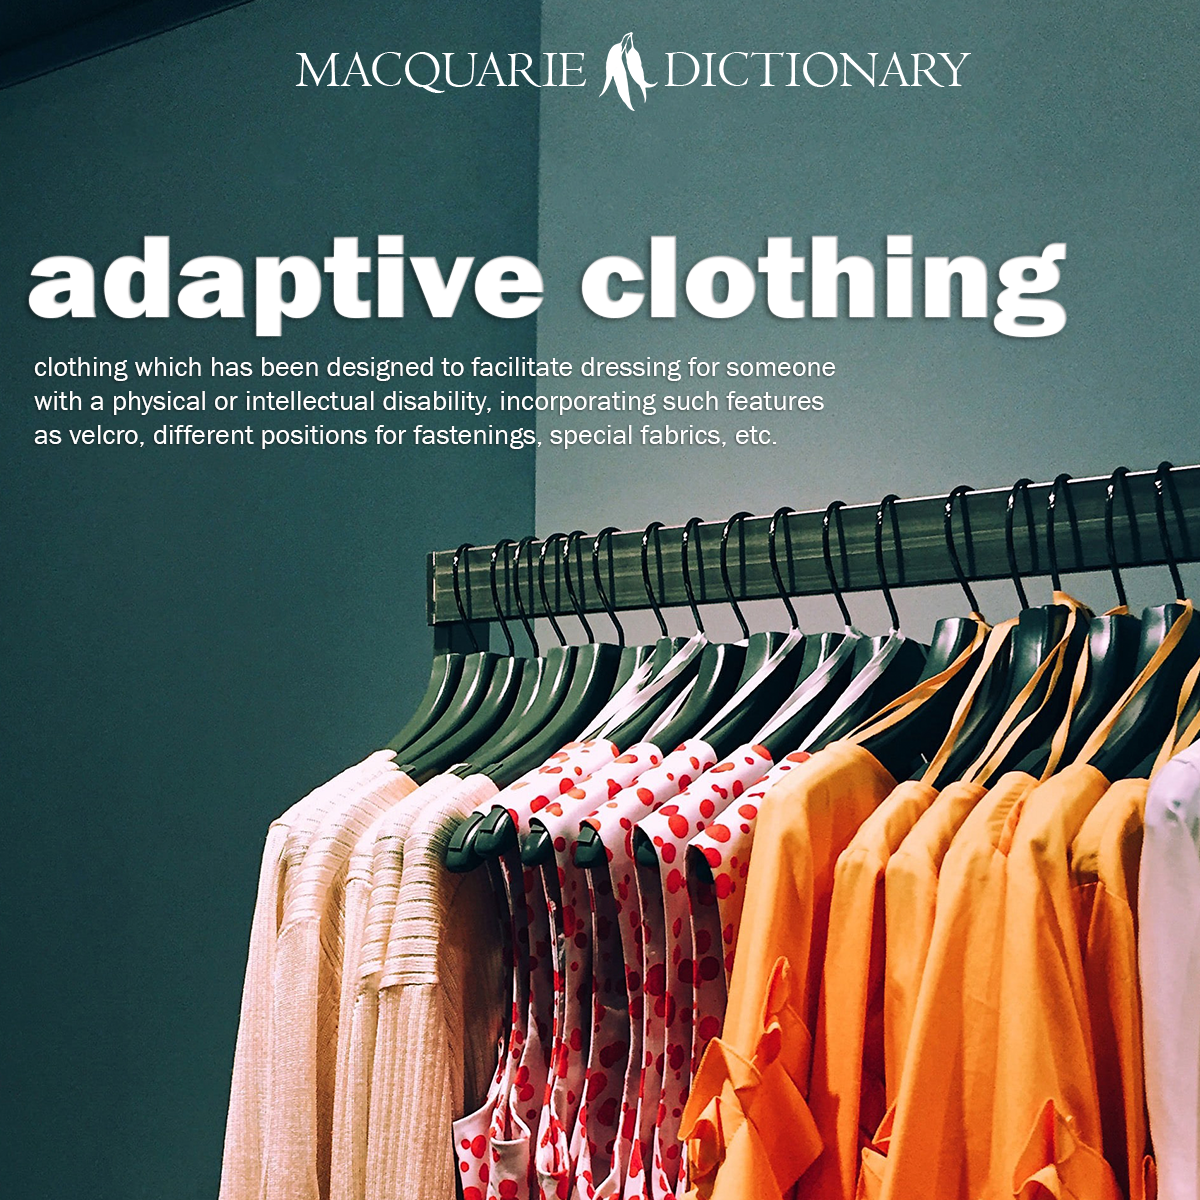 adaptive clothing - clothing which has been designed to facilitate dressing for someone with a physical or intellectual disability, incorporating such features as velcro, different positions for fastenings, special fabrics, etc